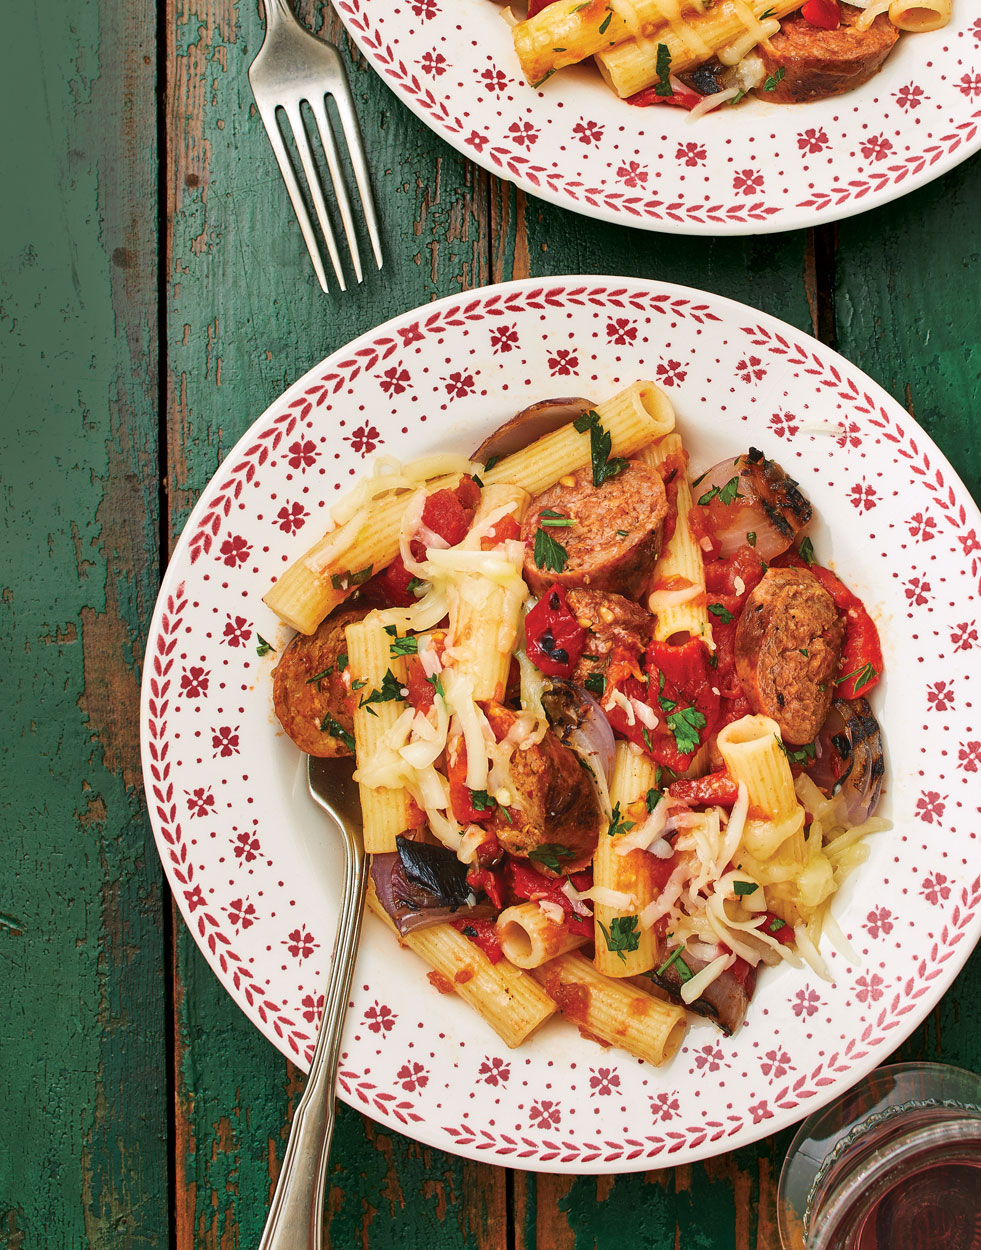 Italian Sausage & Pepper Rigatoni with Grilled Tomato Sauce